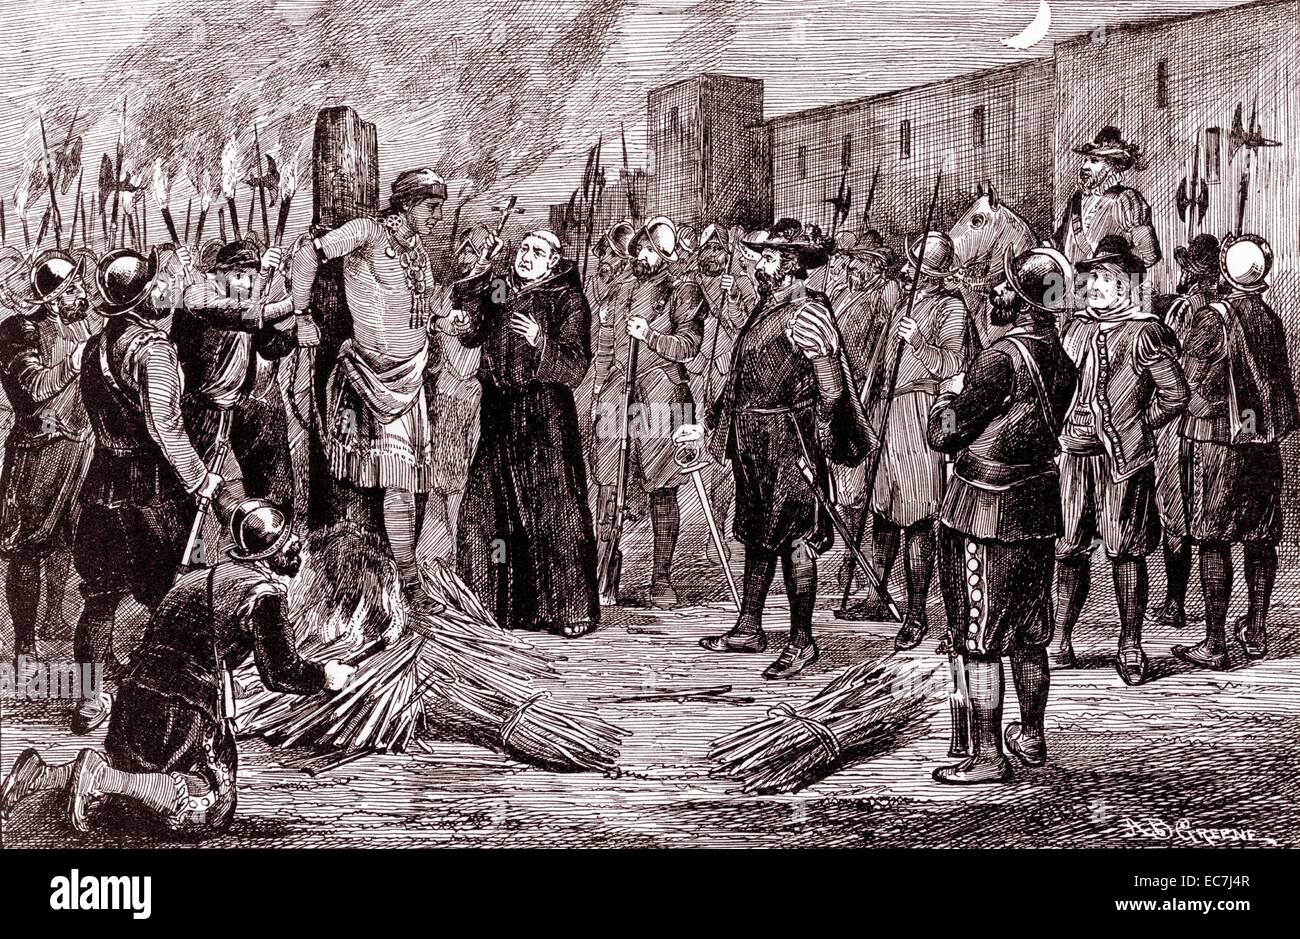 The execution of Inca by A.B. Greene. The Spaniards burnt Atahualpa at the stake with a monk presiding holding crucifix - Stock Image